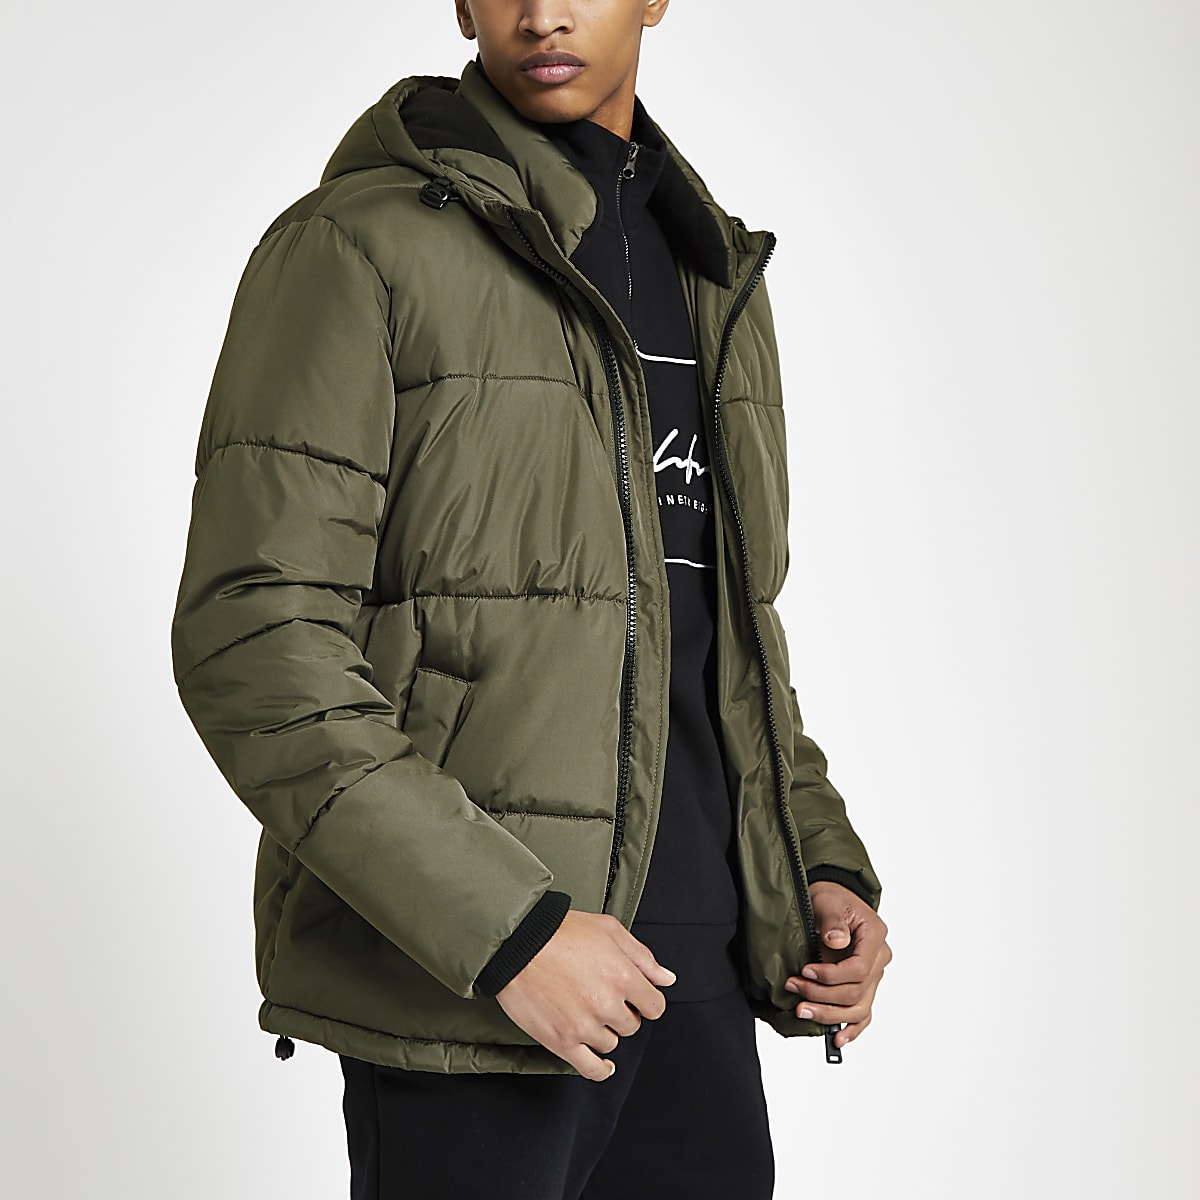 Khaki 'Prolific' hooded puffer jacket